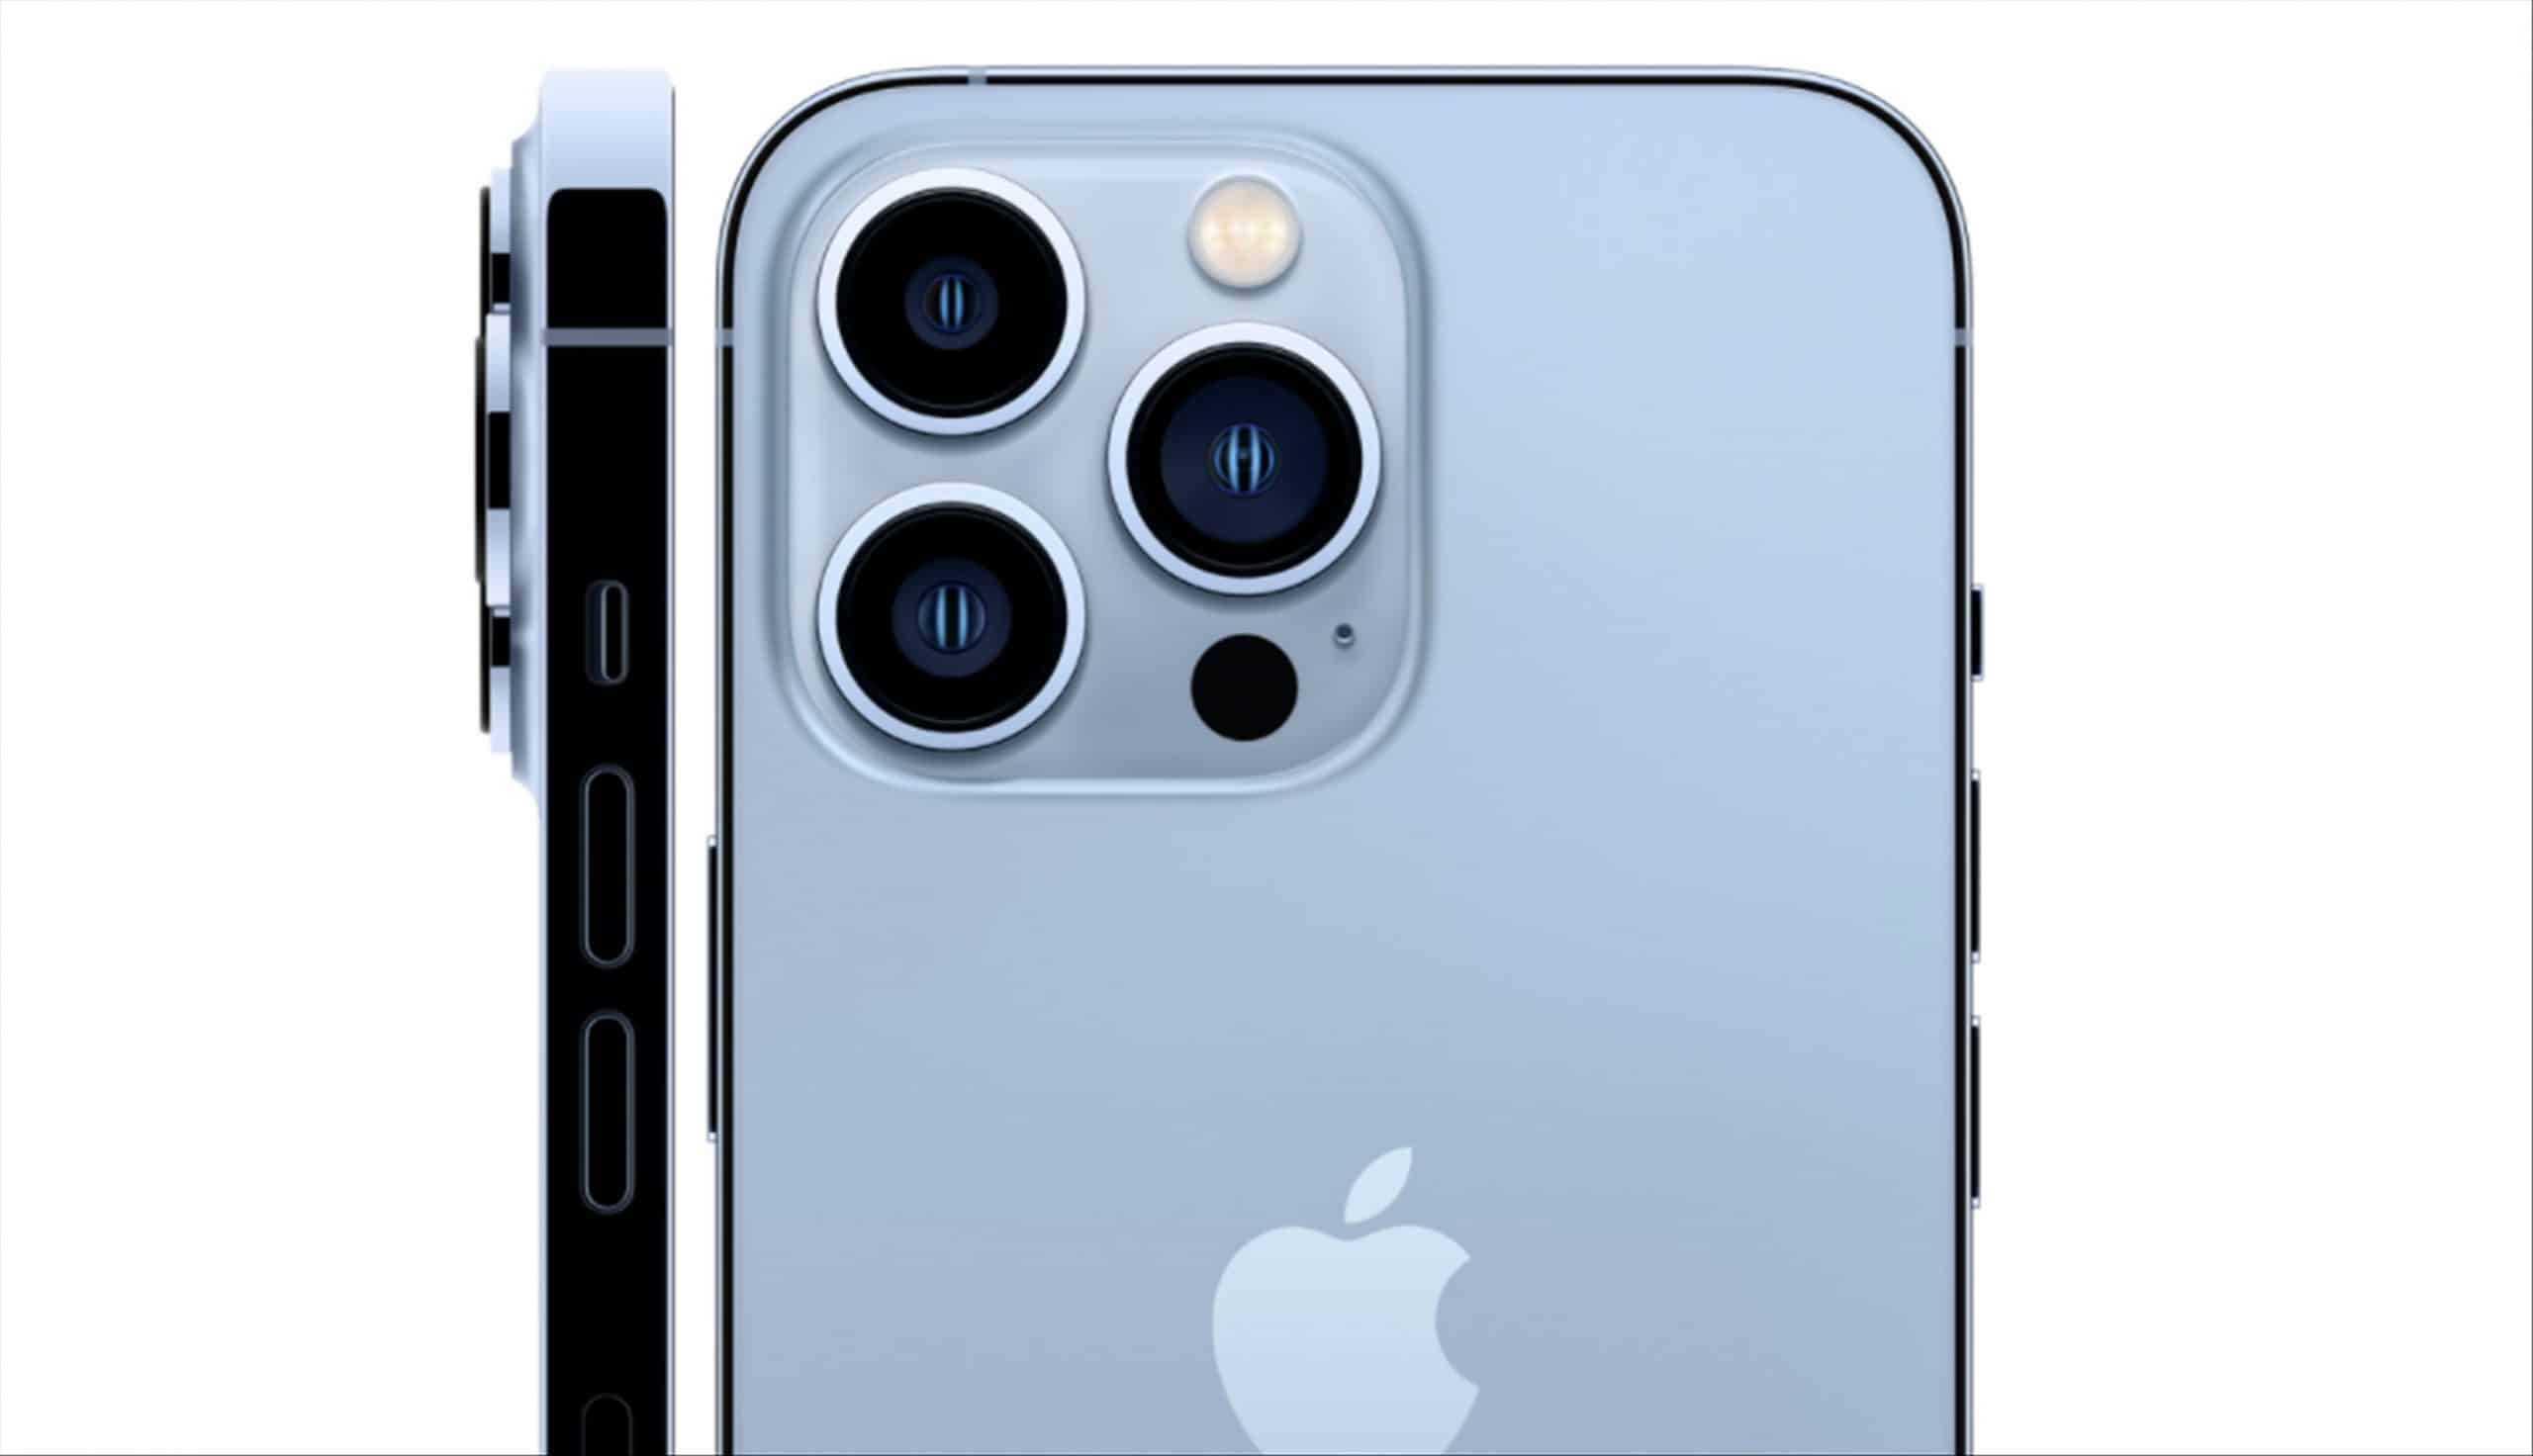 Short summary of what's new with iPhone 13  & iPhone 13 Pro